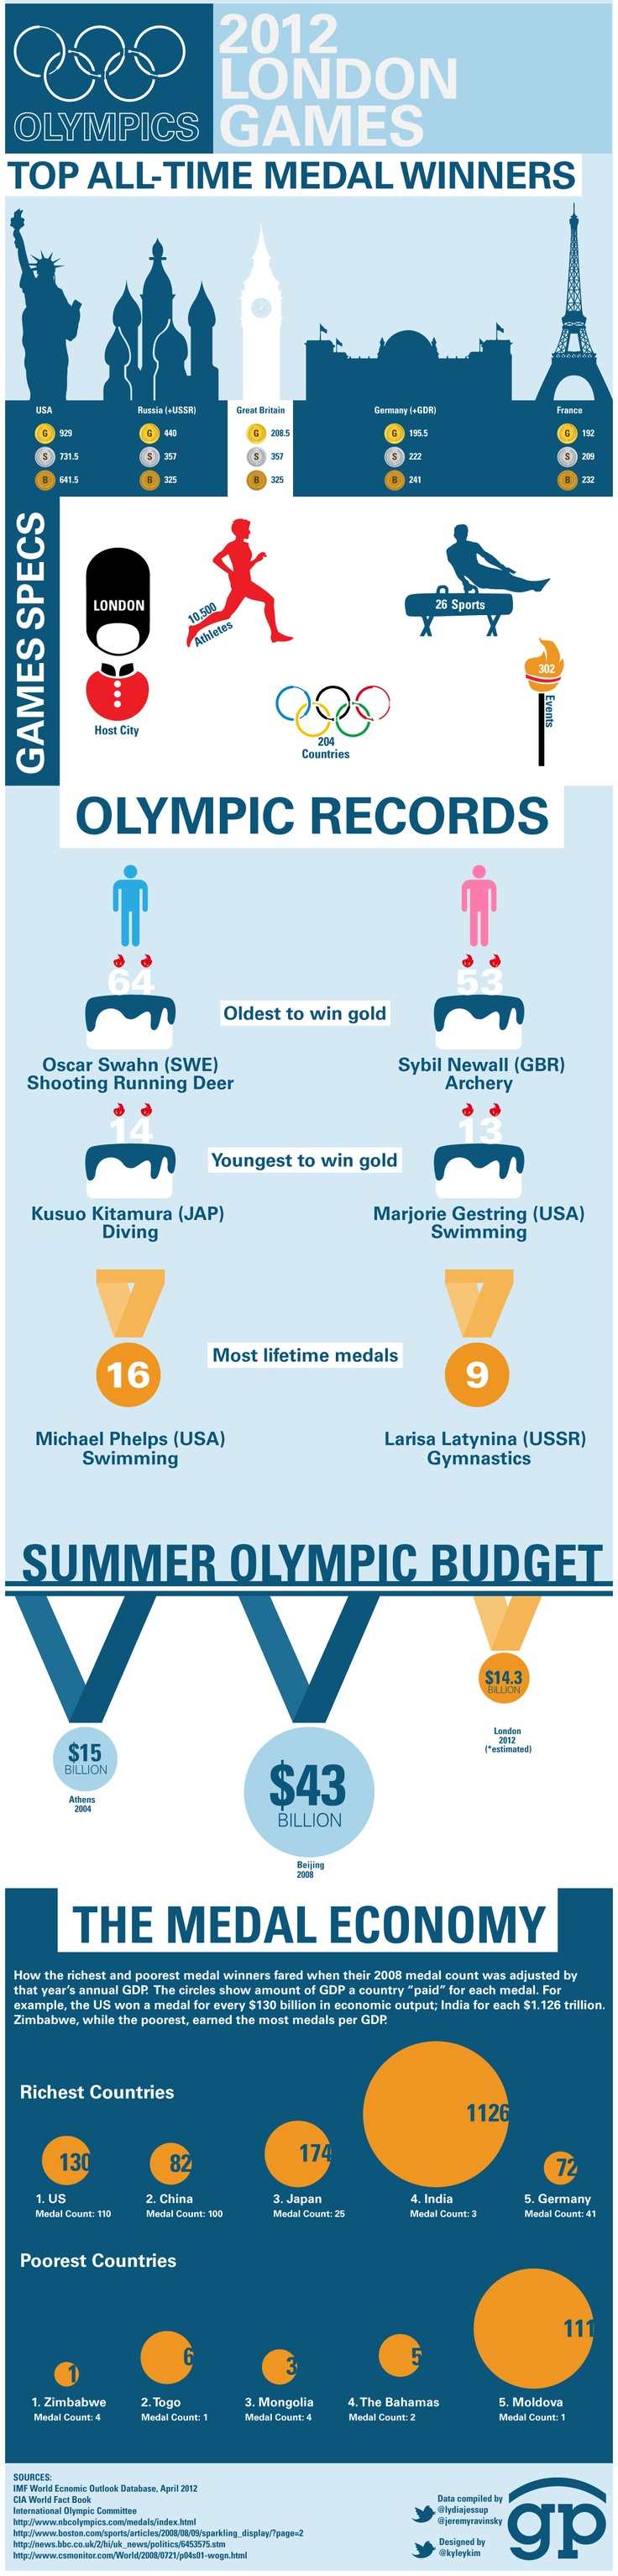 2012 London Summer Olympics [INFOGRAPHIC] | GlobalPost